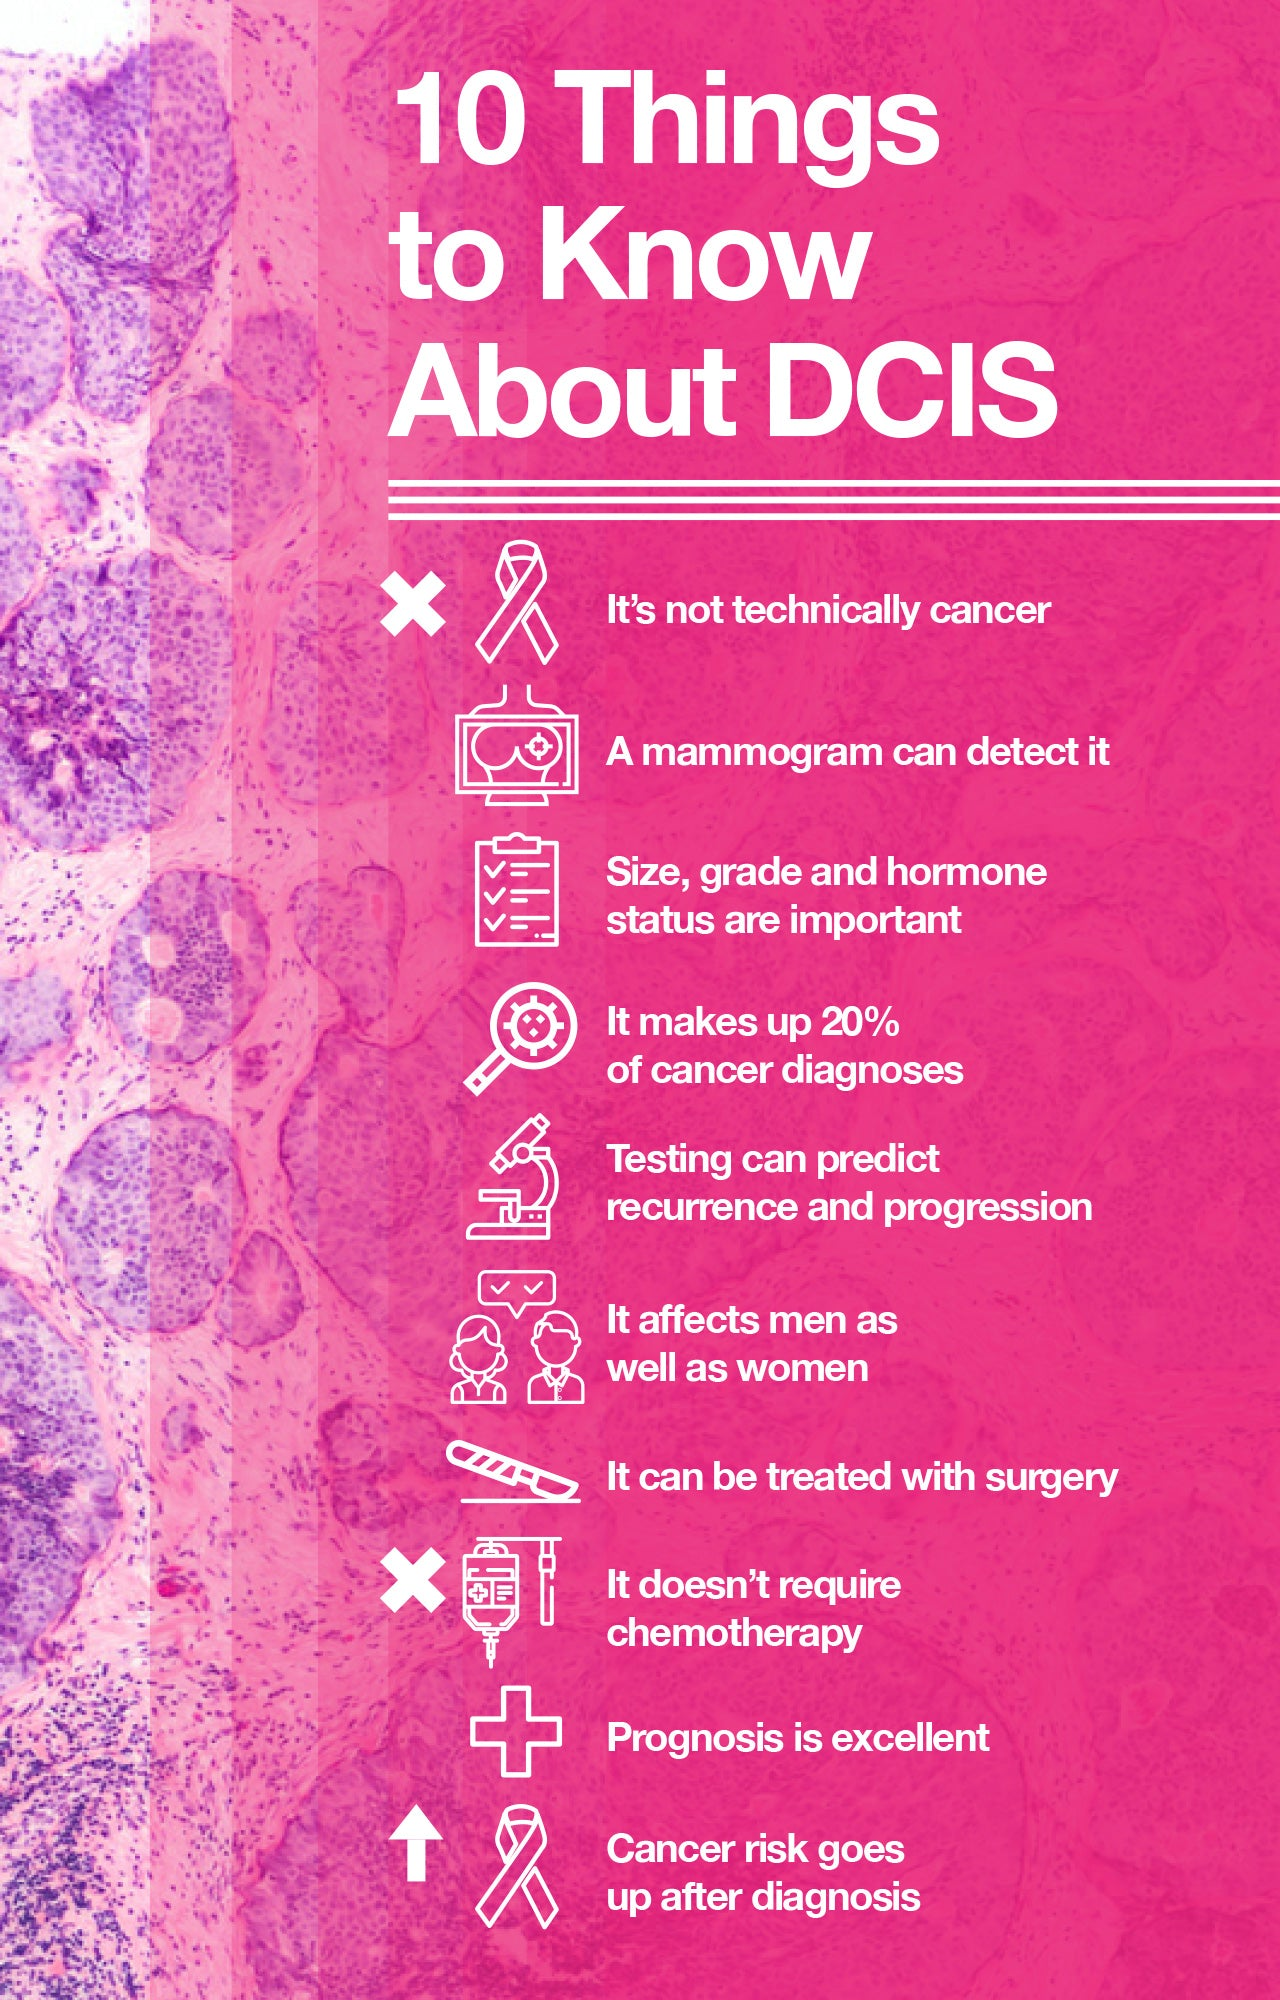 Things to know about DCIS